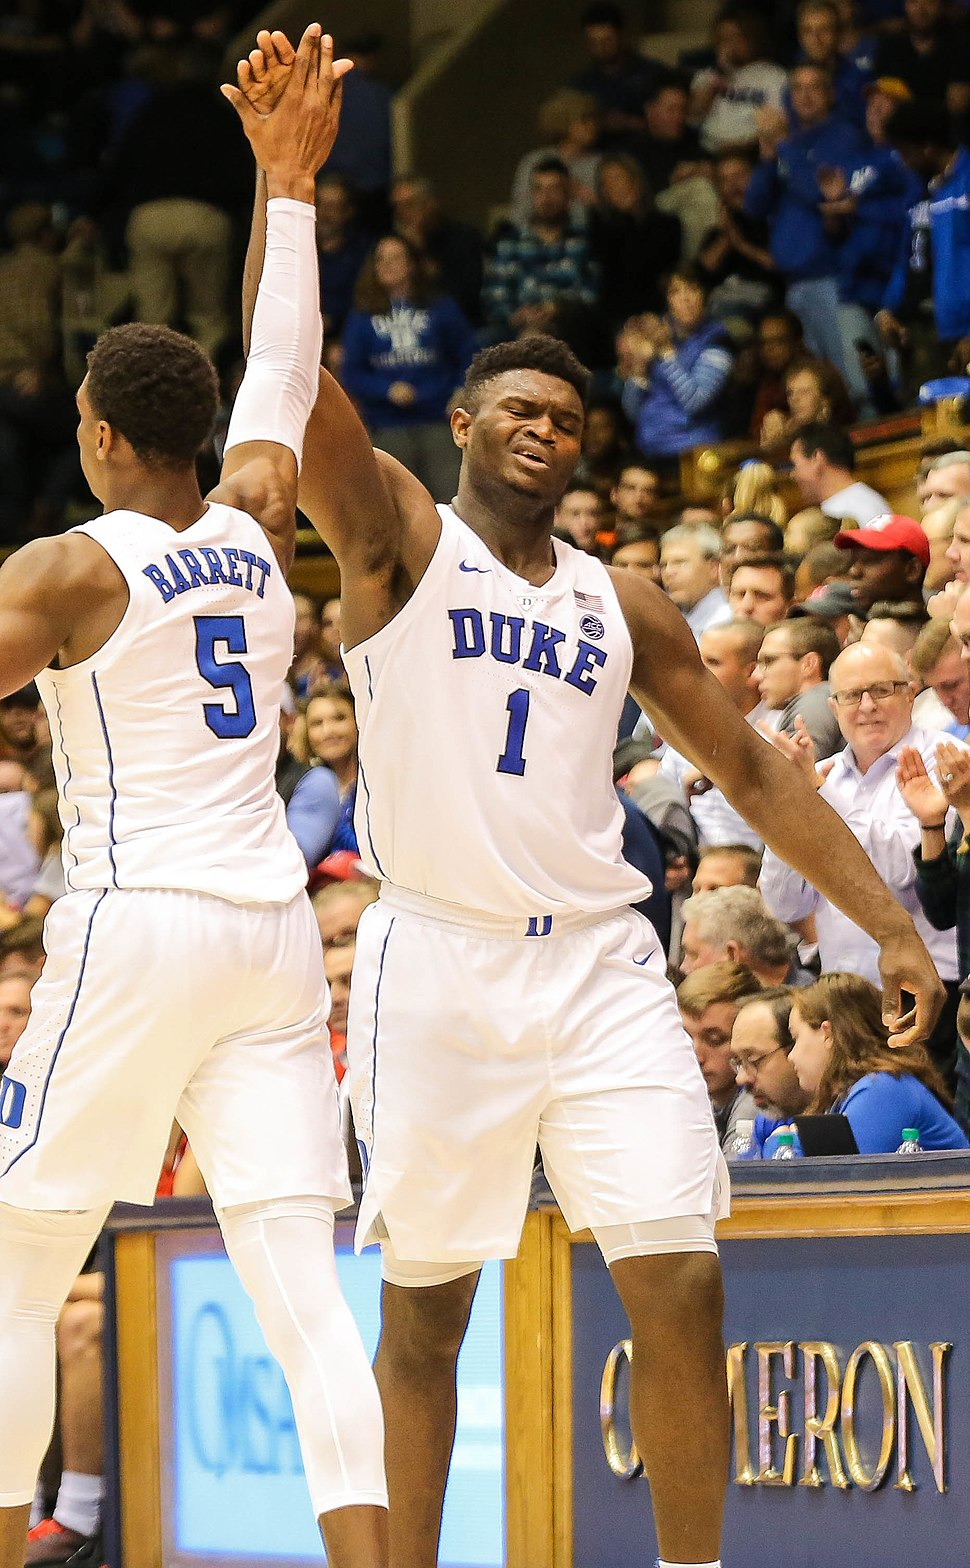 RJ Barrett & Zion Williamson - Keenan Hairston (cropped) 3